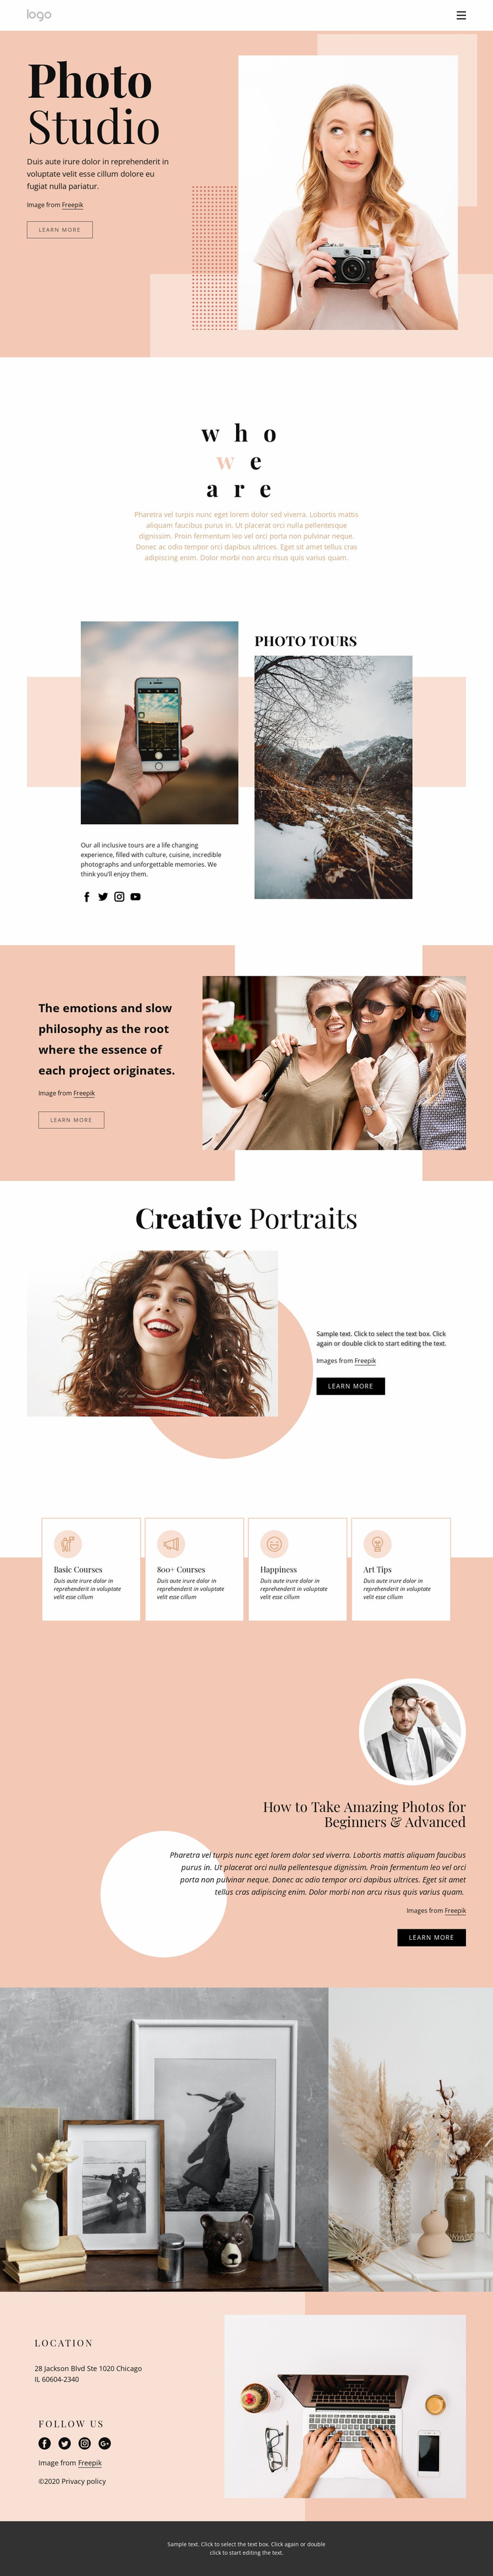 Photography courses Html Website Builder